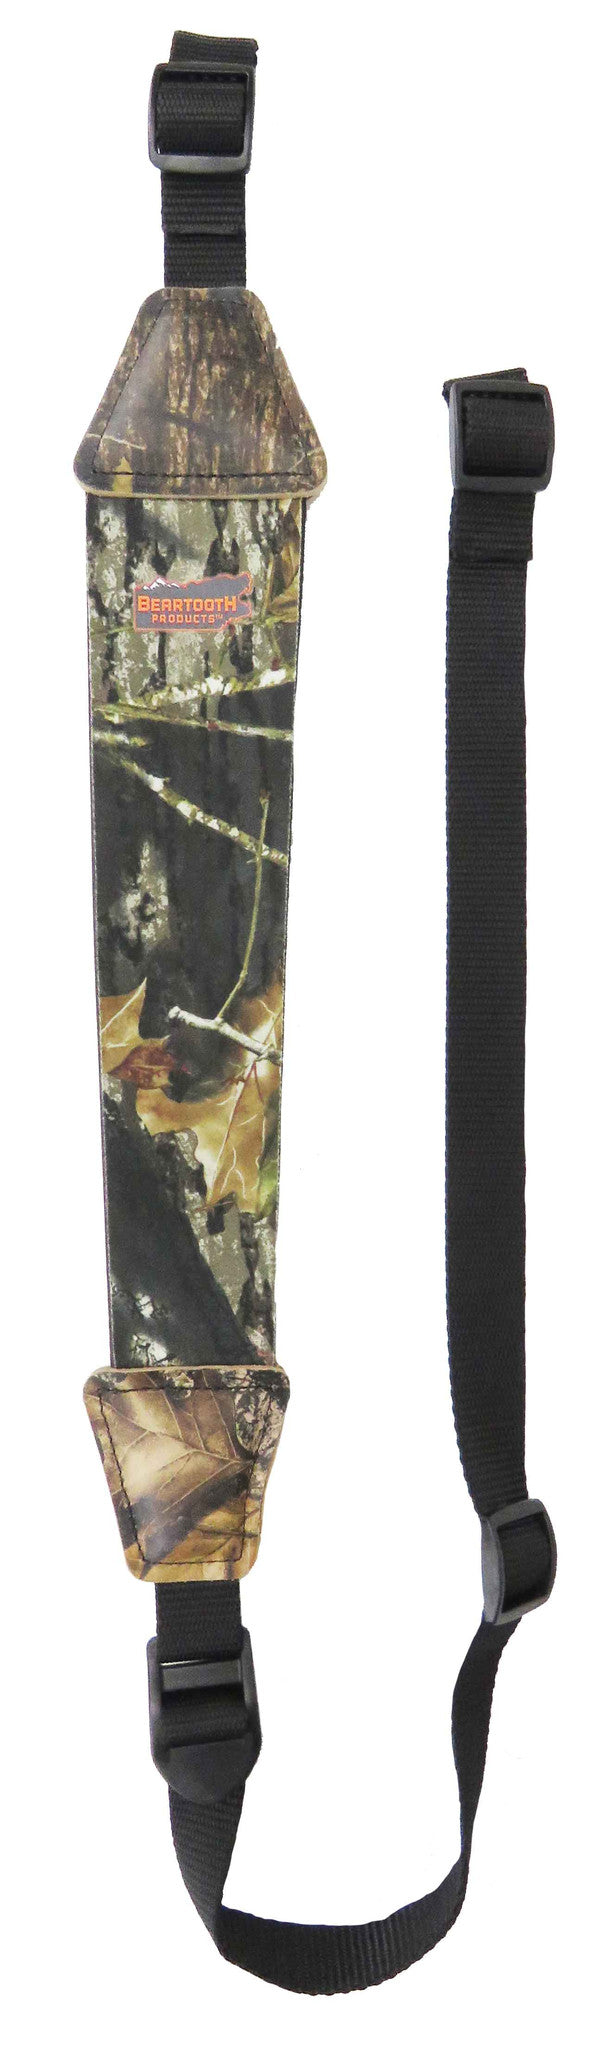 PREMIUM RIFLE SLING - Mossy Oak Break-up